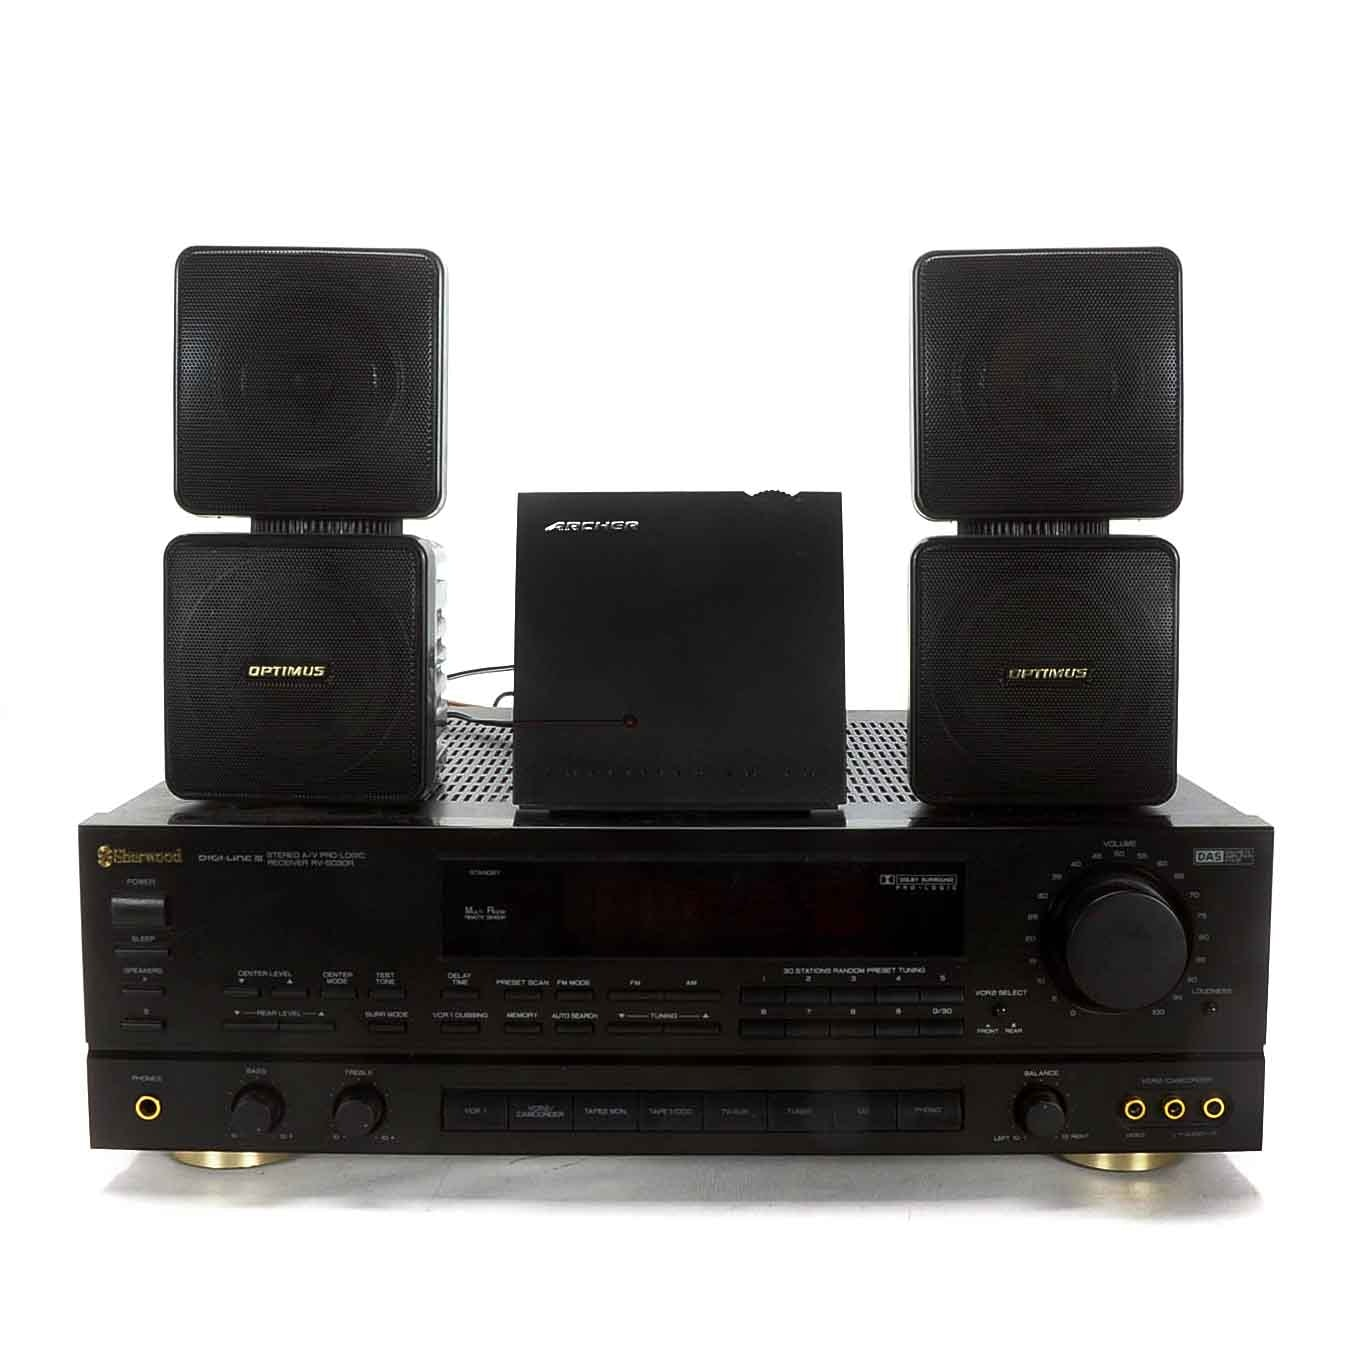 Sherwood RV-5030R ProLogic AV Receiver with Speakers